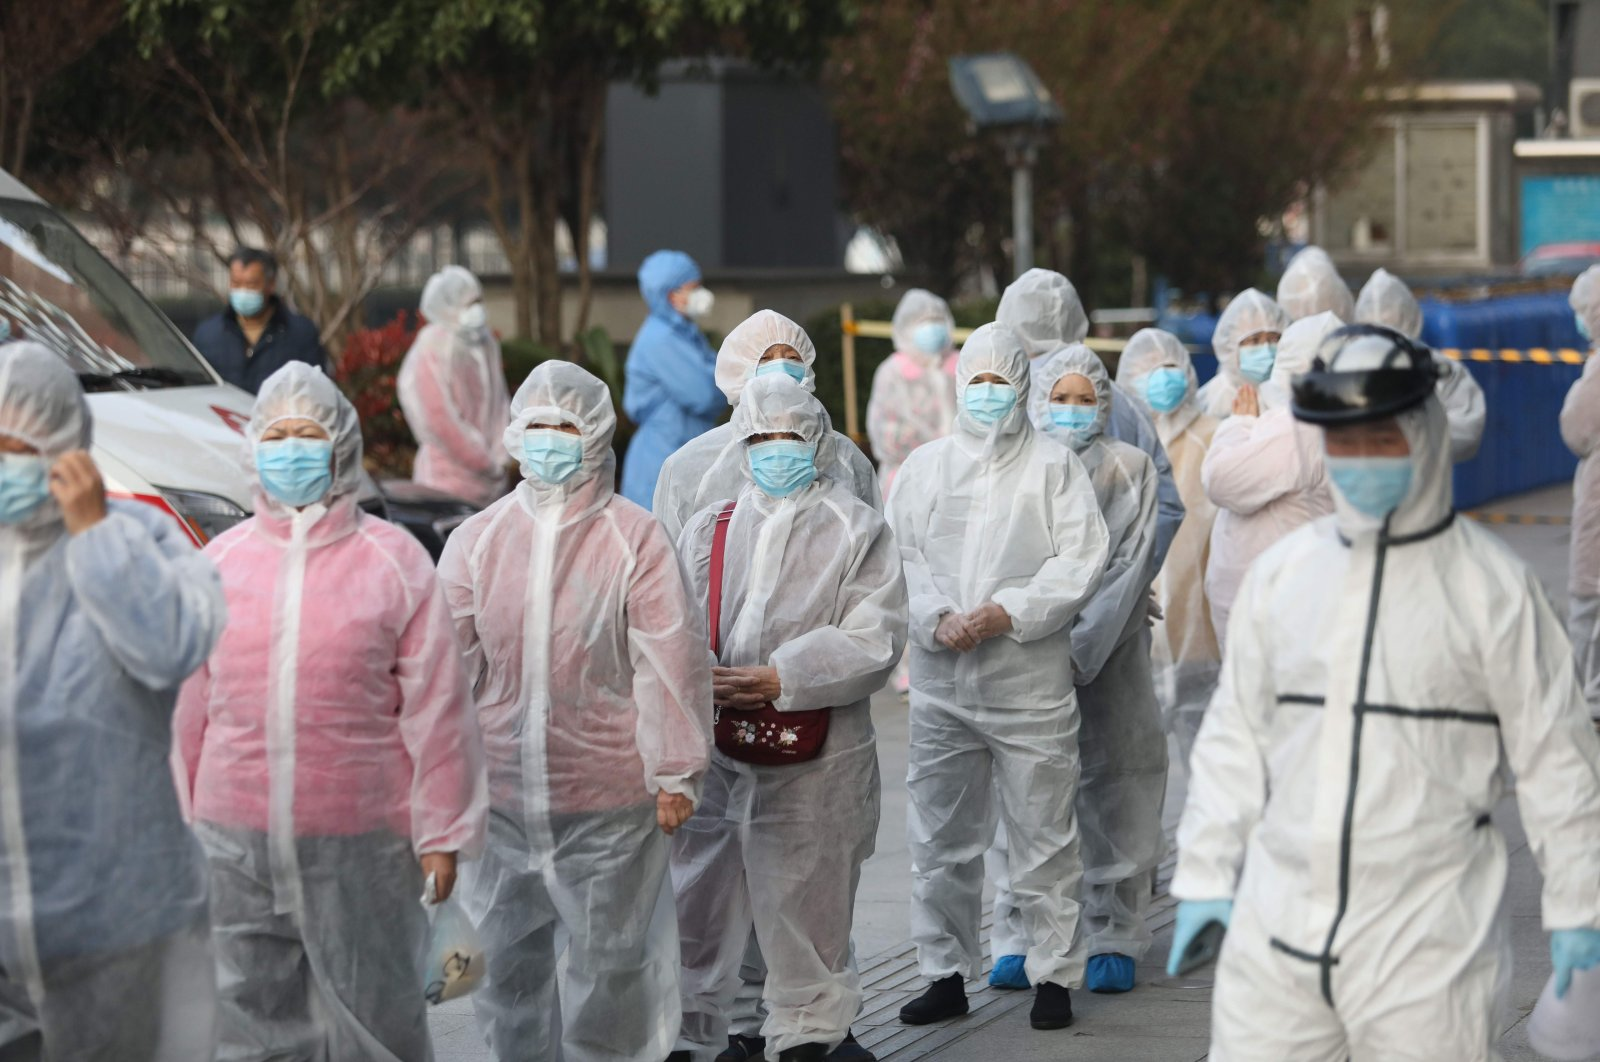 Patients who recovered from COVID-19 wear protective clothing as they line up to be tested again at a hospital in Wuhan, Hubei province, central China, March 14, 2020. (AFP Photo)